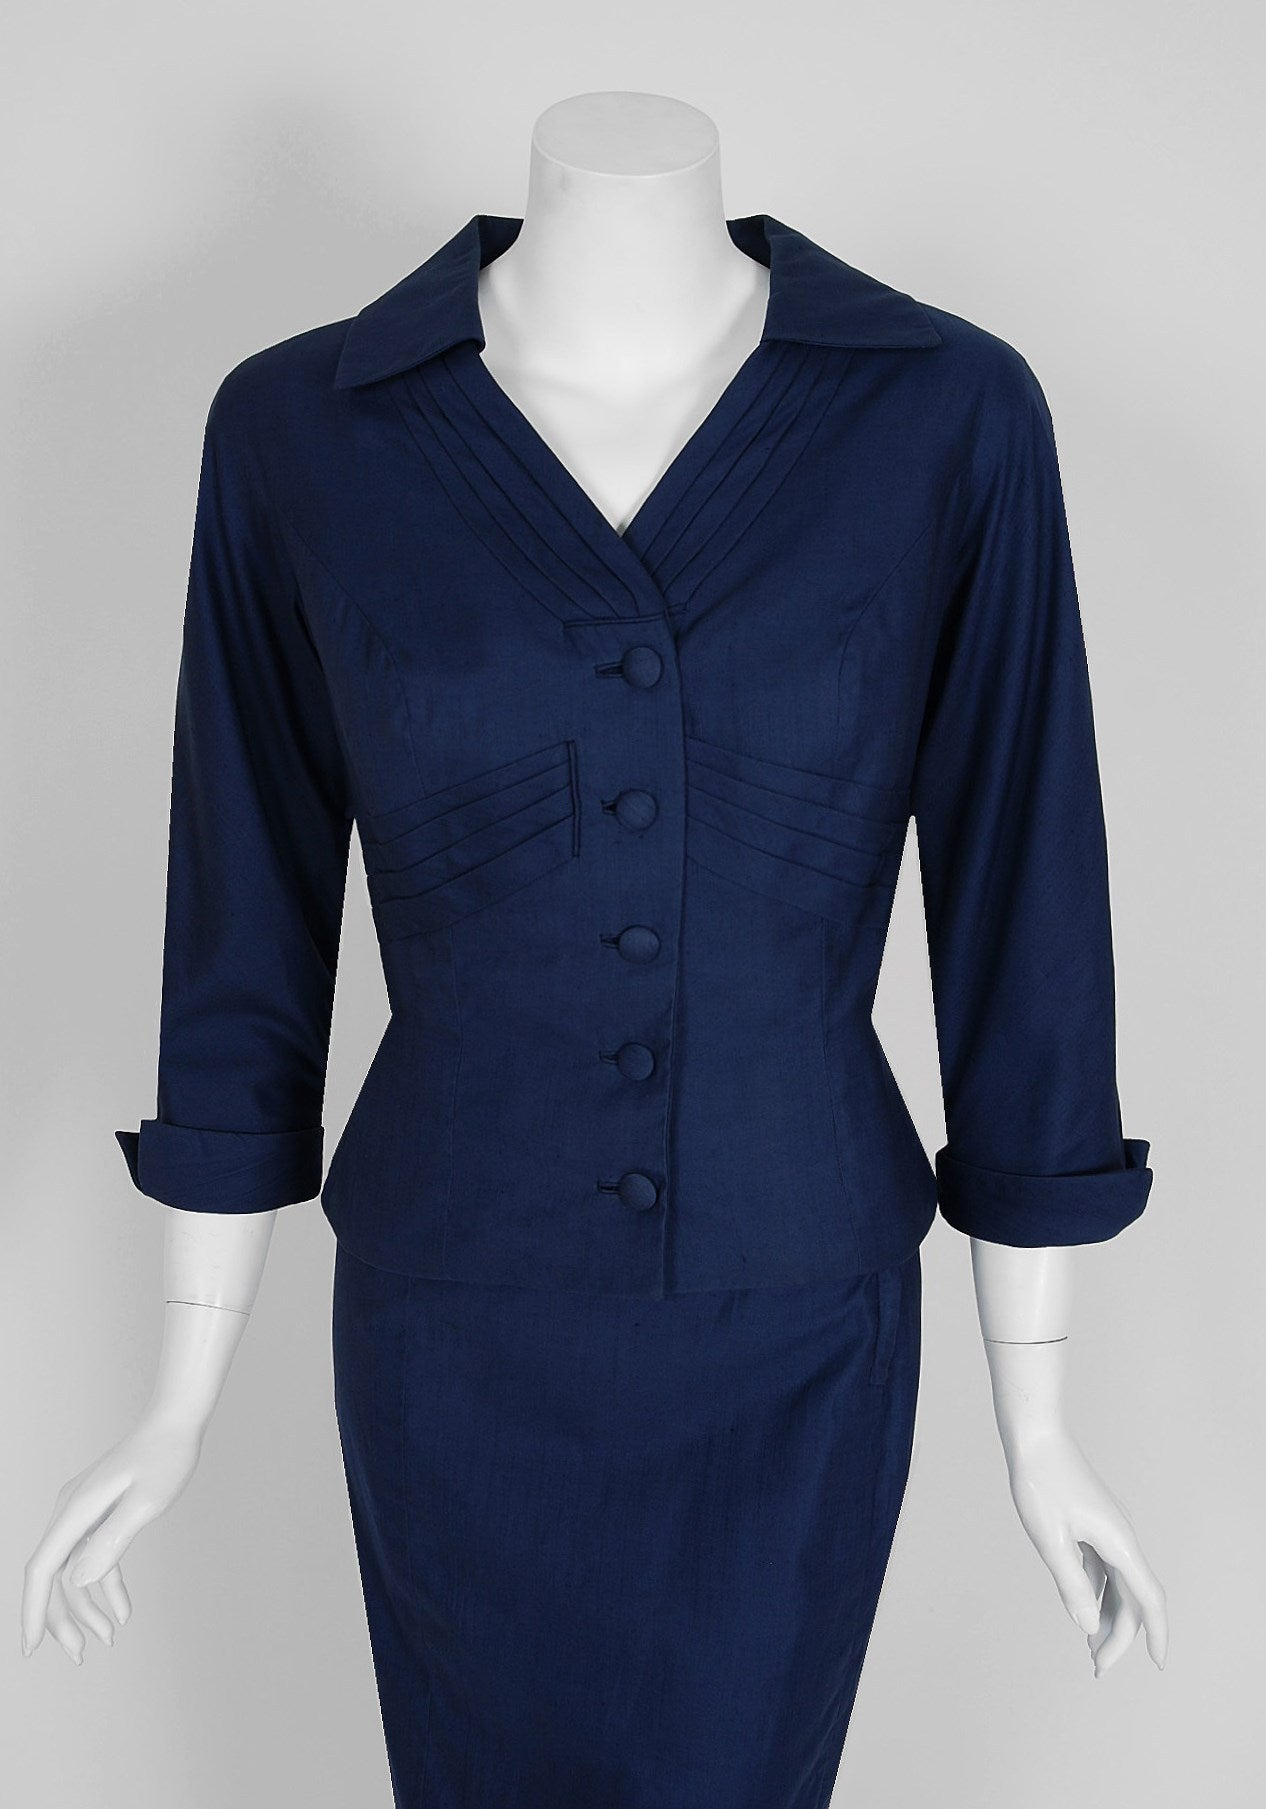 1940's Don Loper Navy-Blue Silk Tailored Hourglass Noir Pencil-Skirt Suit 2